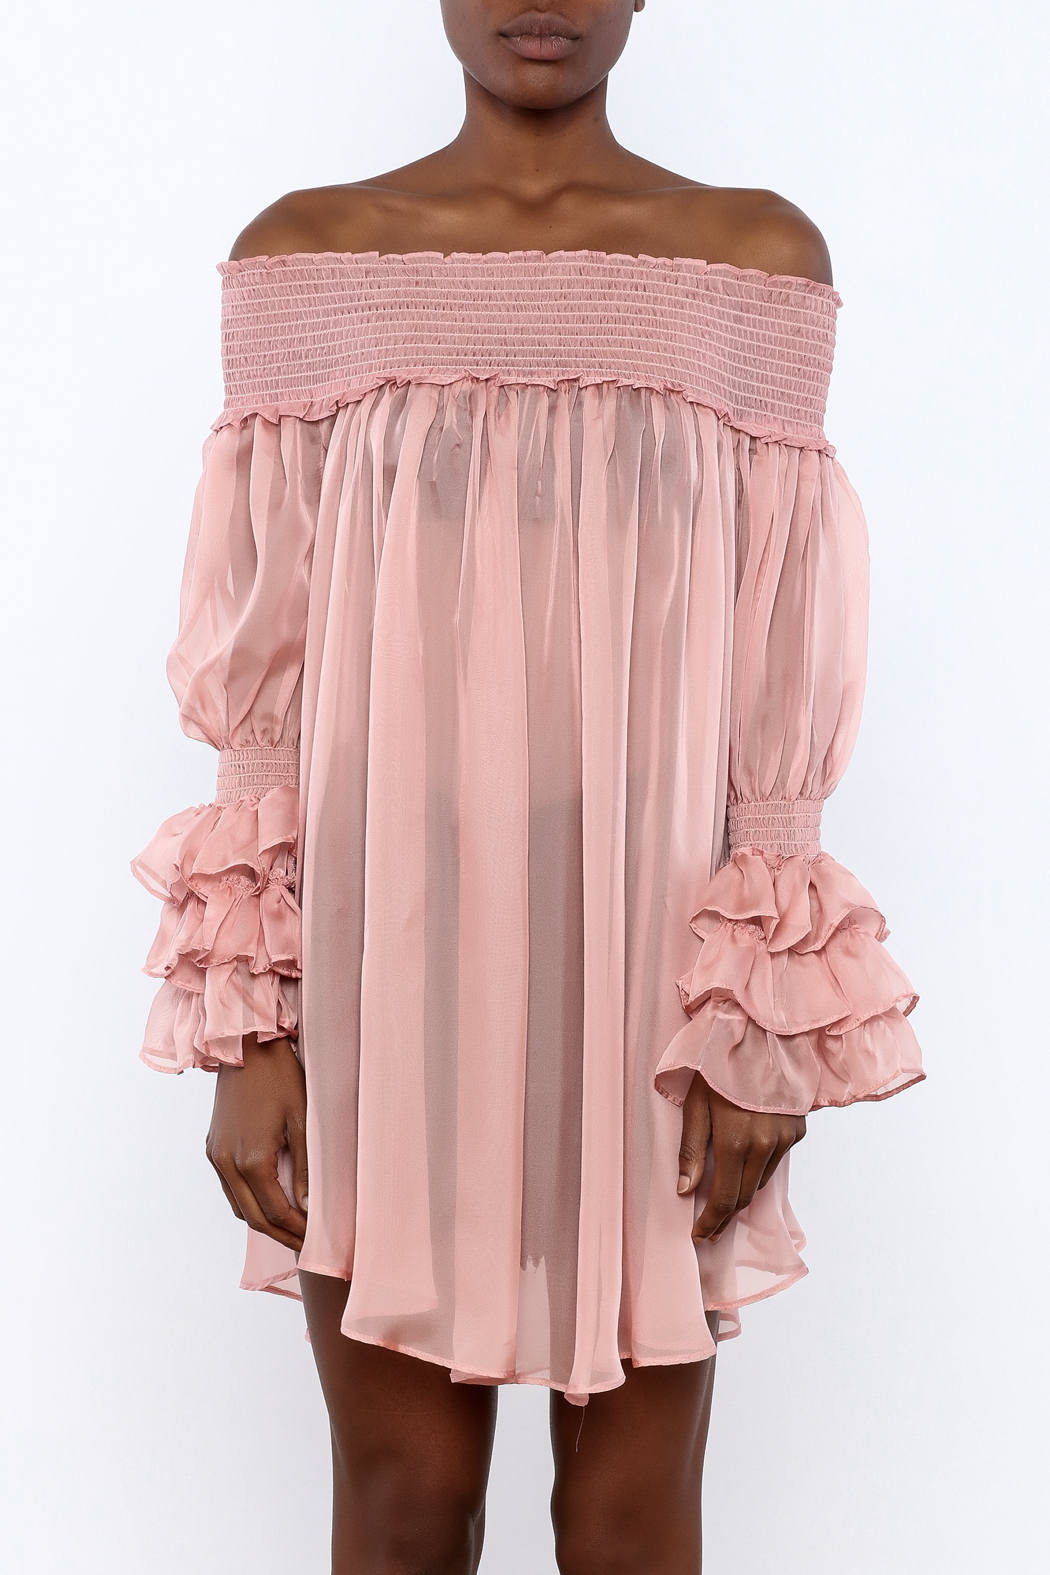 cq by cq Sheer Off Shoulder Top - Side Cropped Image